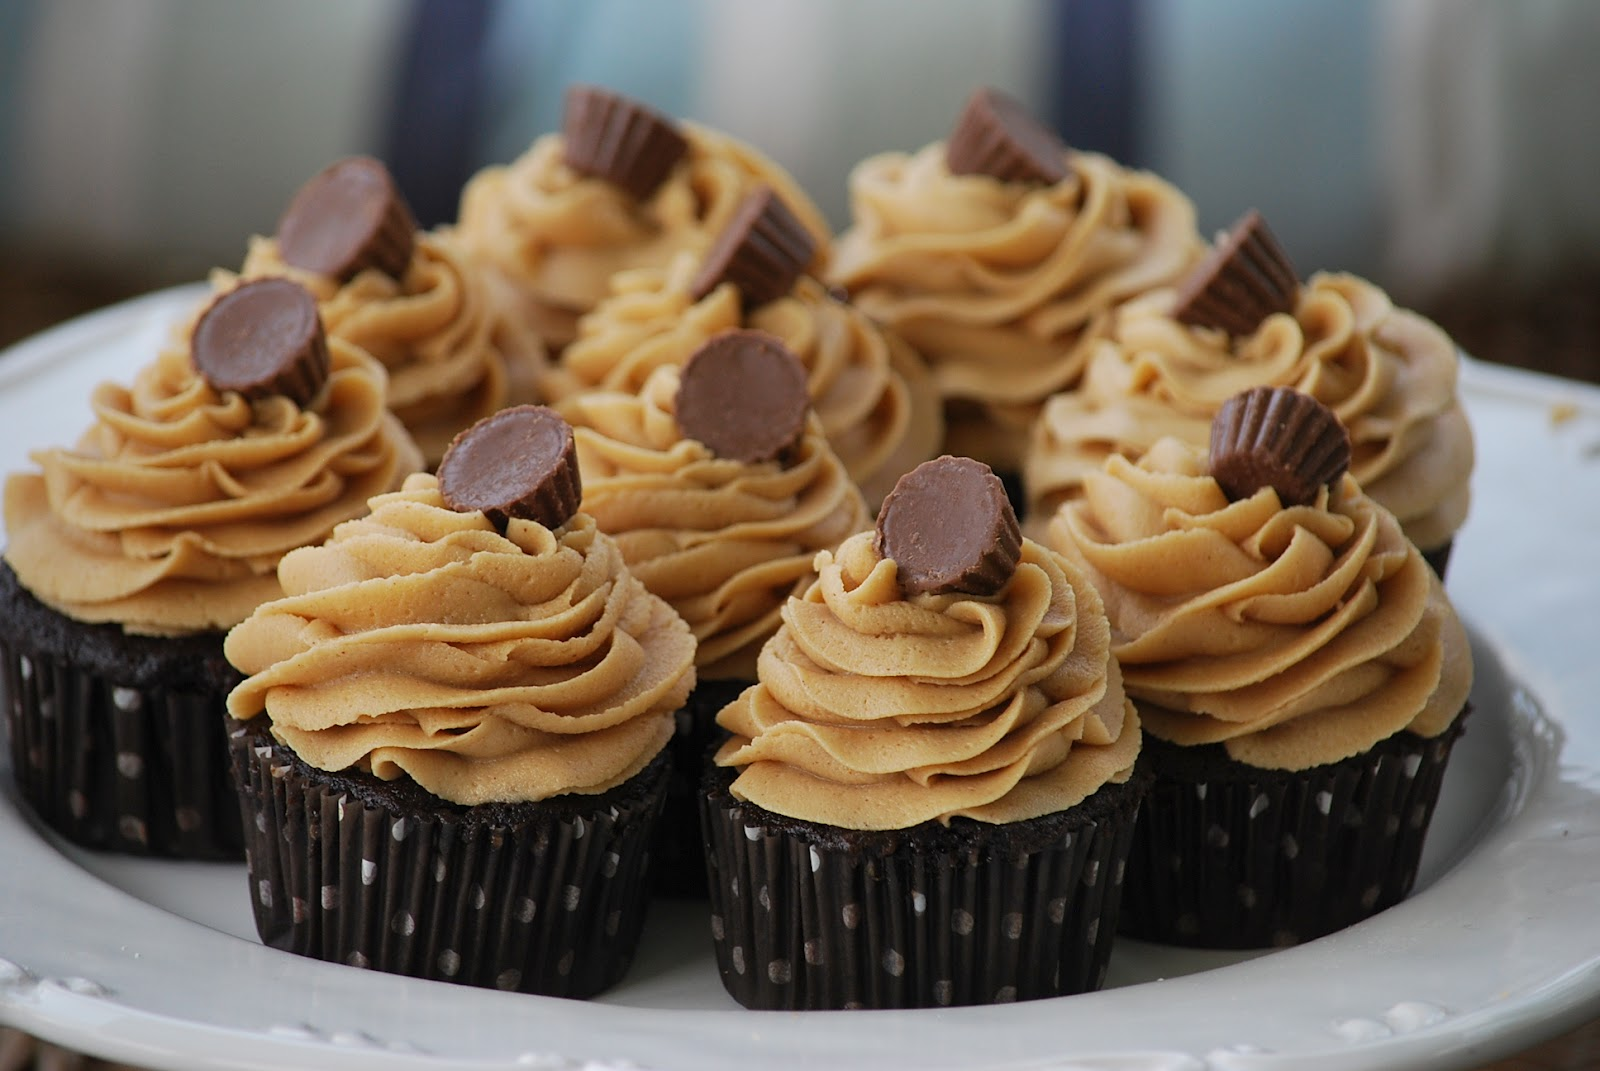 Peanut Butter Cupcakes For Childrens